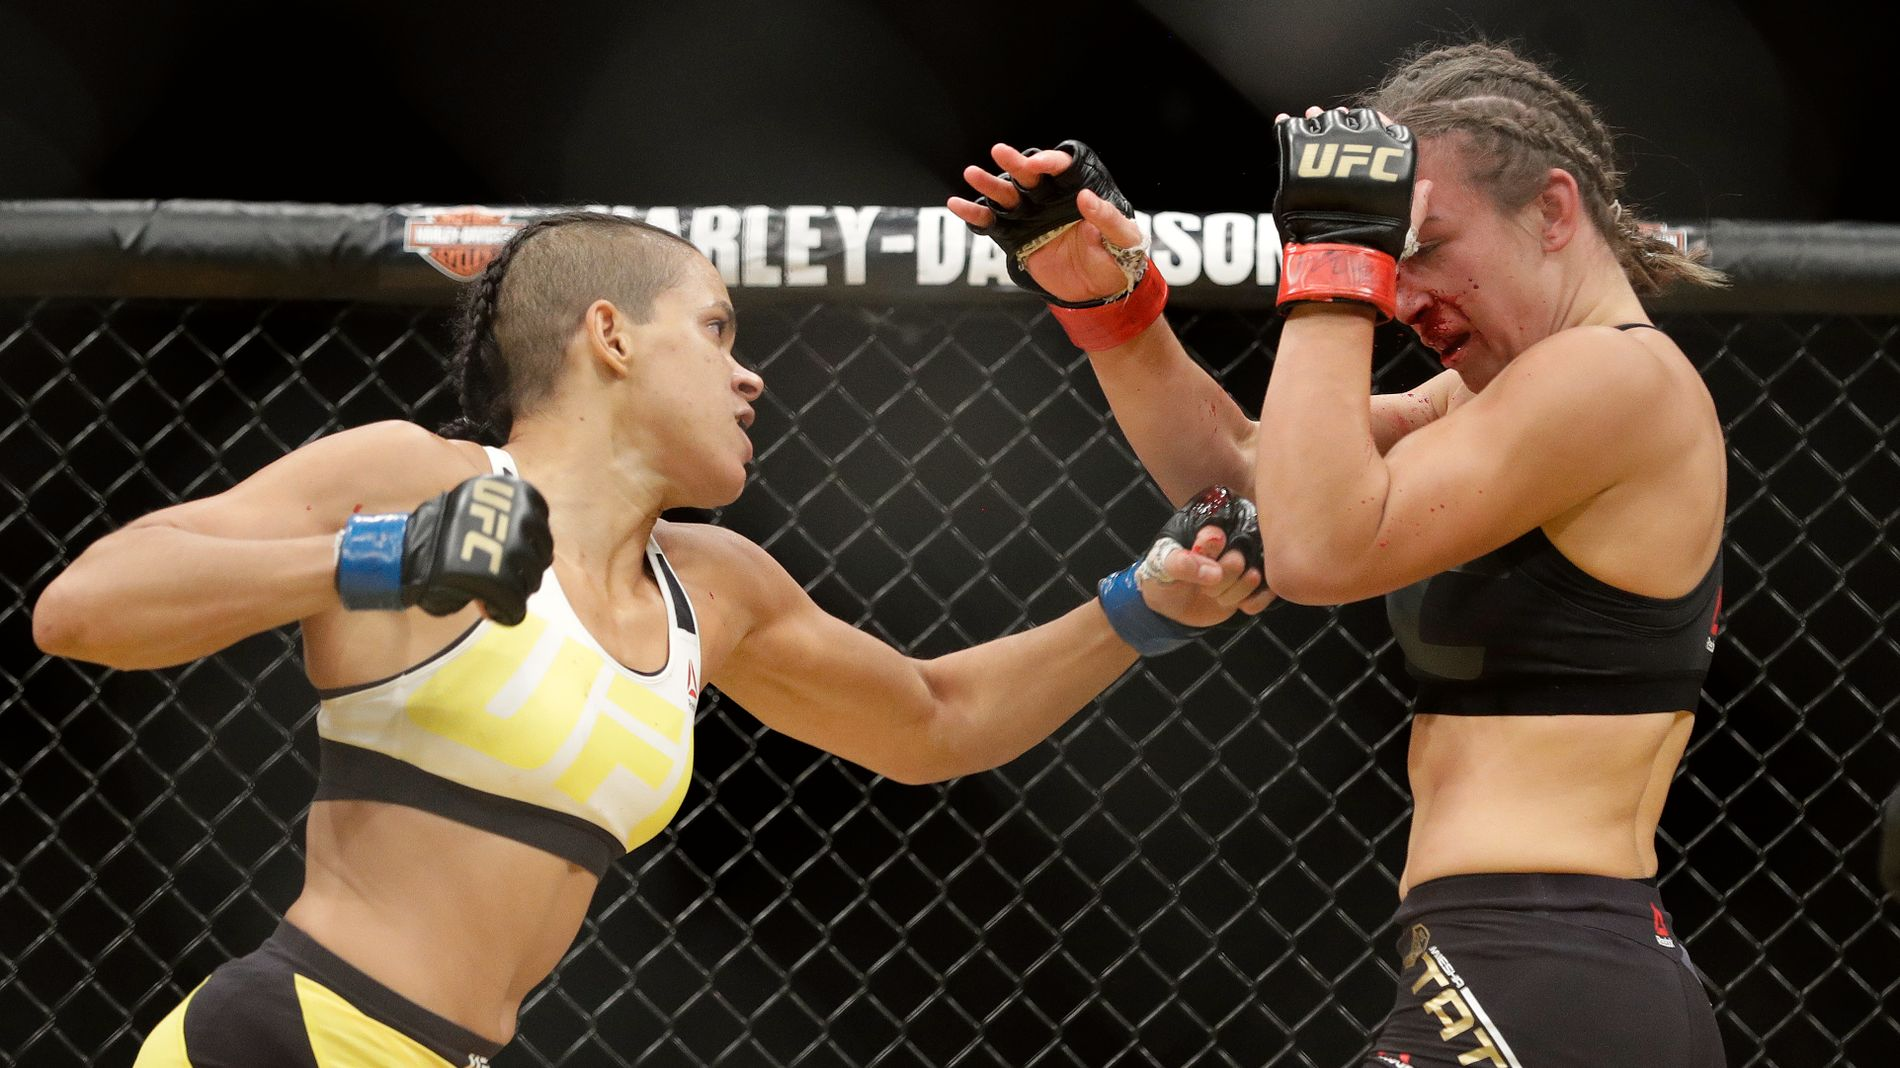 Amanda Nunes, left, fights Miesha Tate during their women's bantamweight championship mixed martial arts bout at UFC 200, Saturday, July 9, 2016, in Las Vegas. (AP Photo/John Locher)